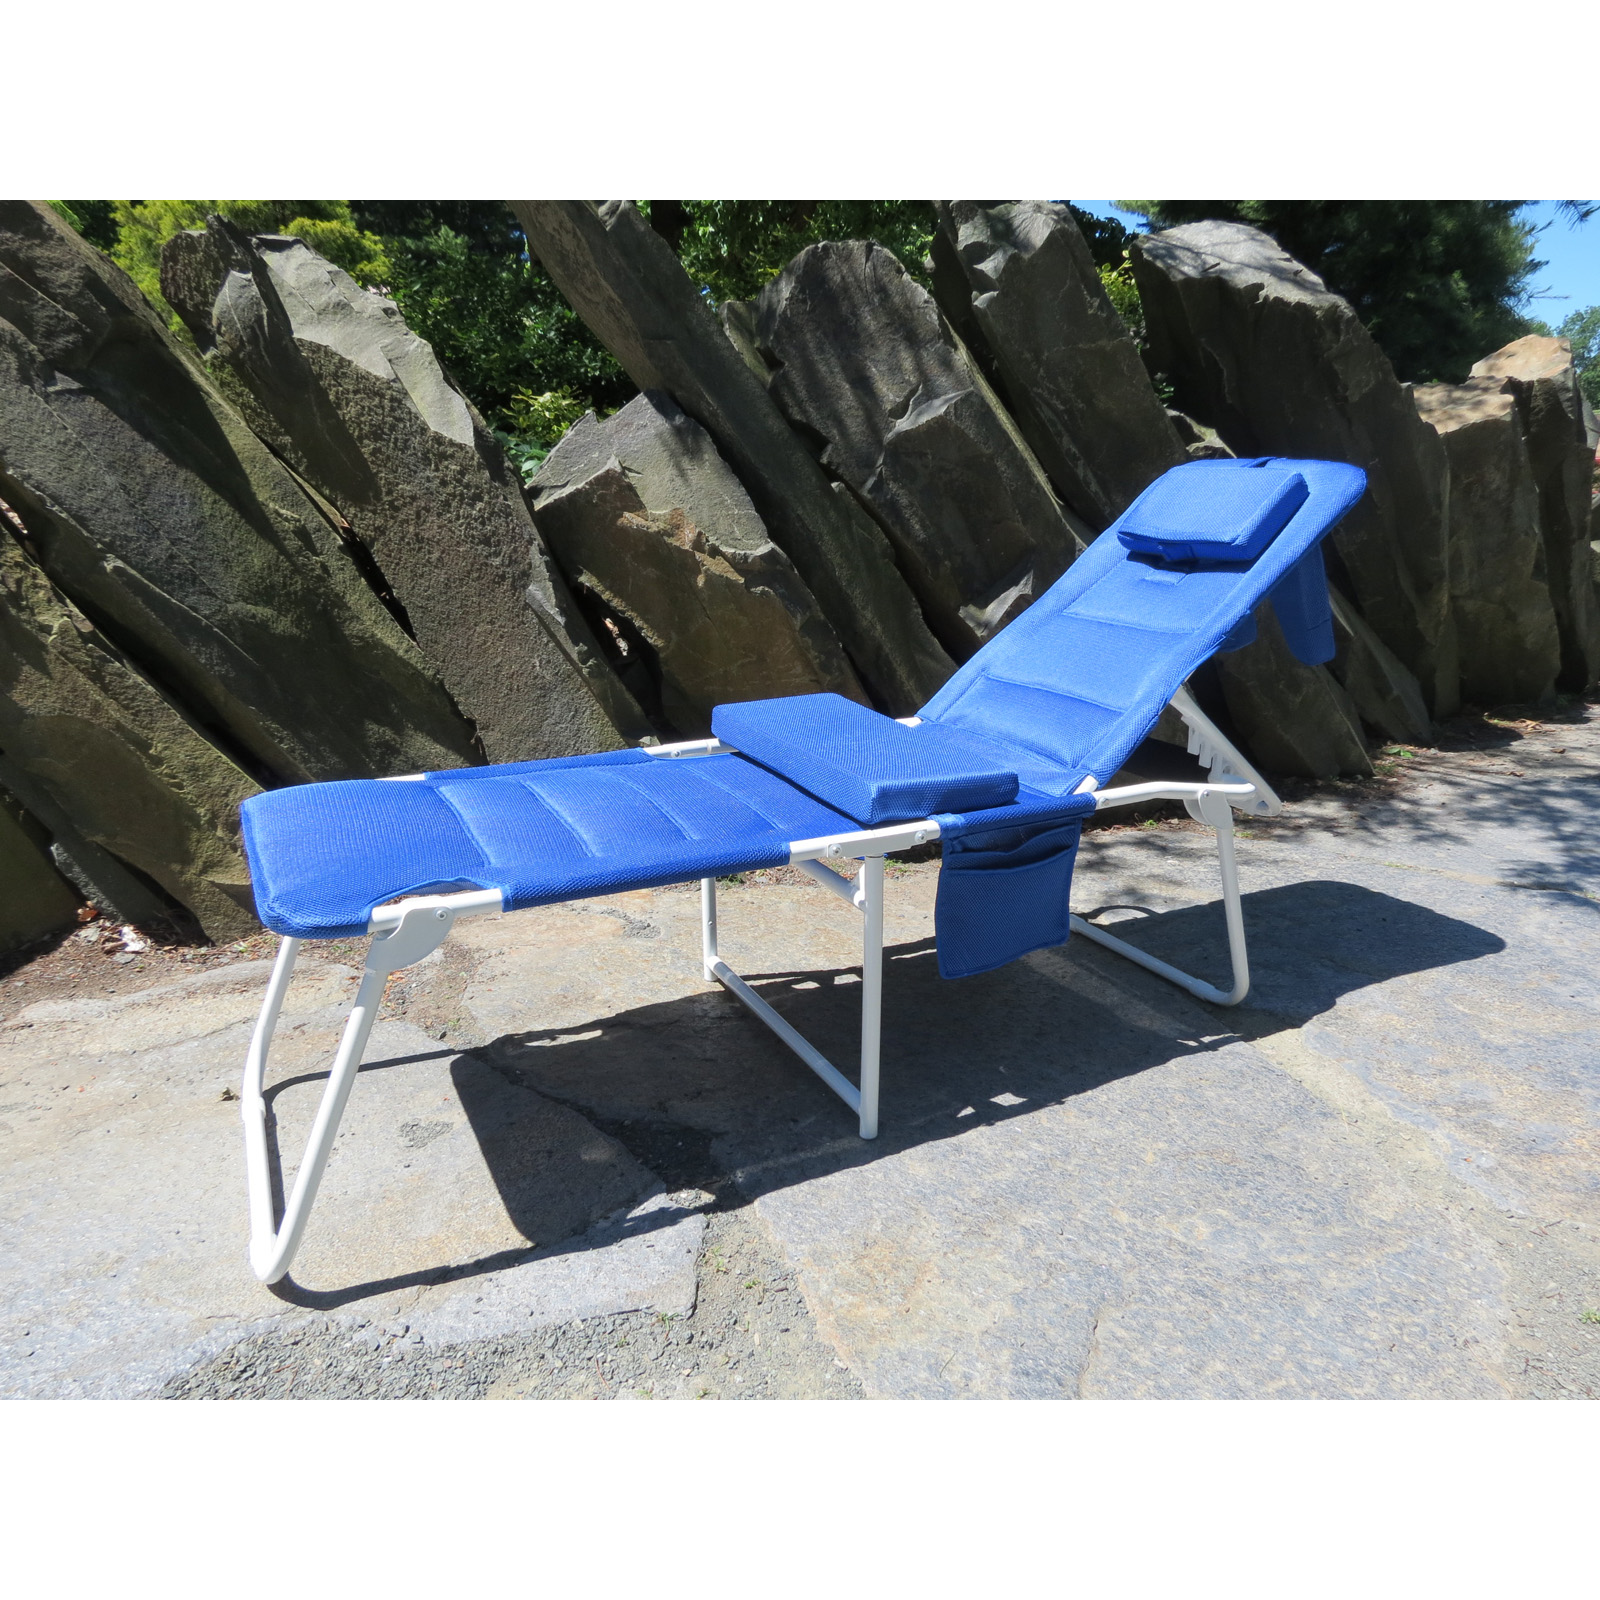 Beach Lounger Chair Ergo Lounger Cloud Oh Deluxe Beach Lounger Beach Chairs